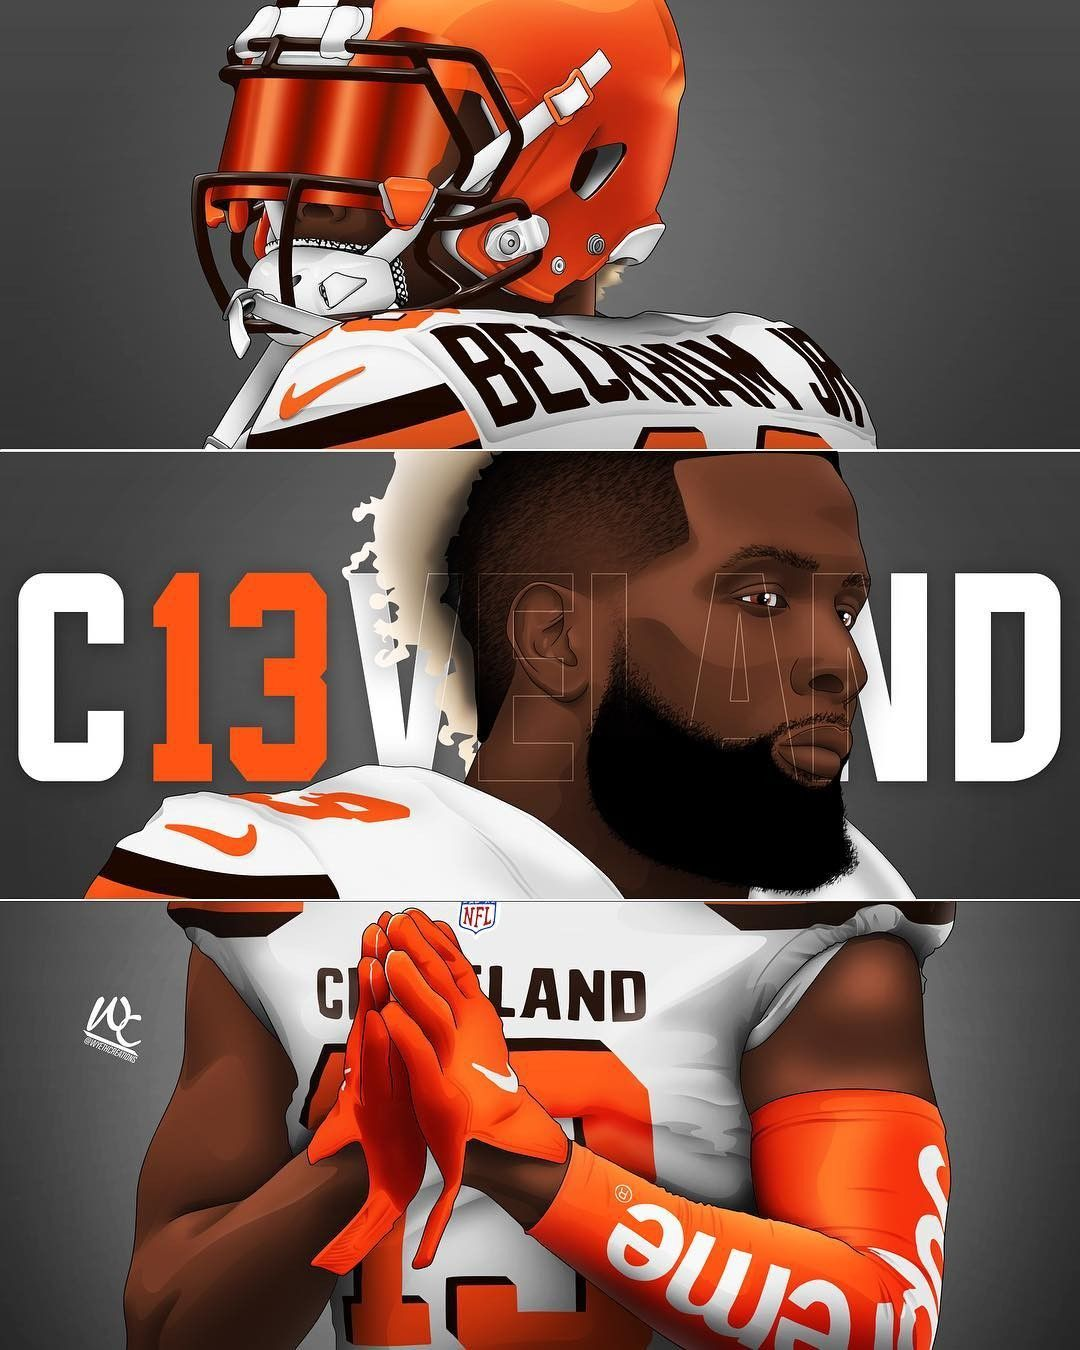 Pin By Nick Kensler On Sports Graphic Design Beckham Football Nfl Football Players Nfl Football Pictures